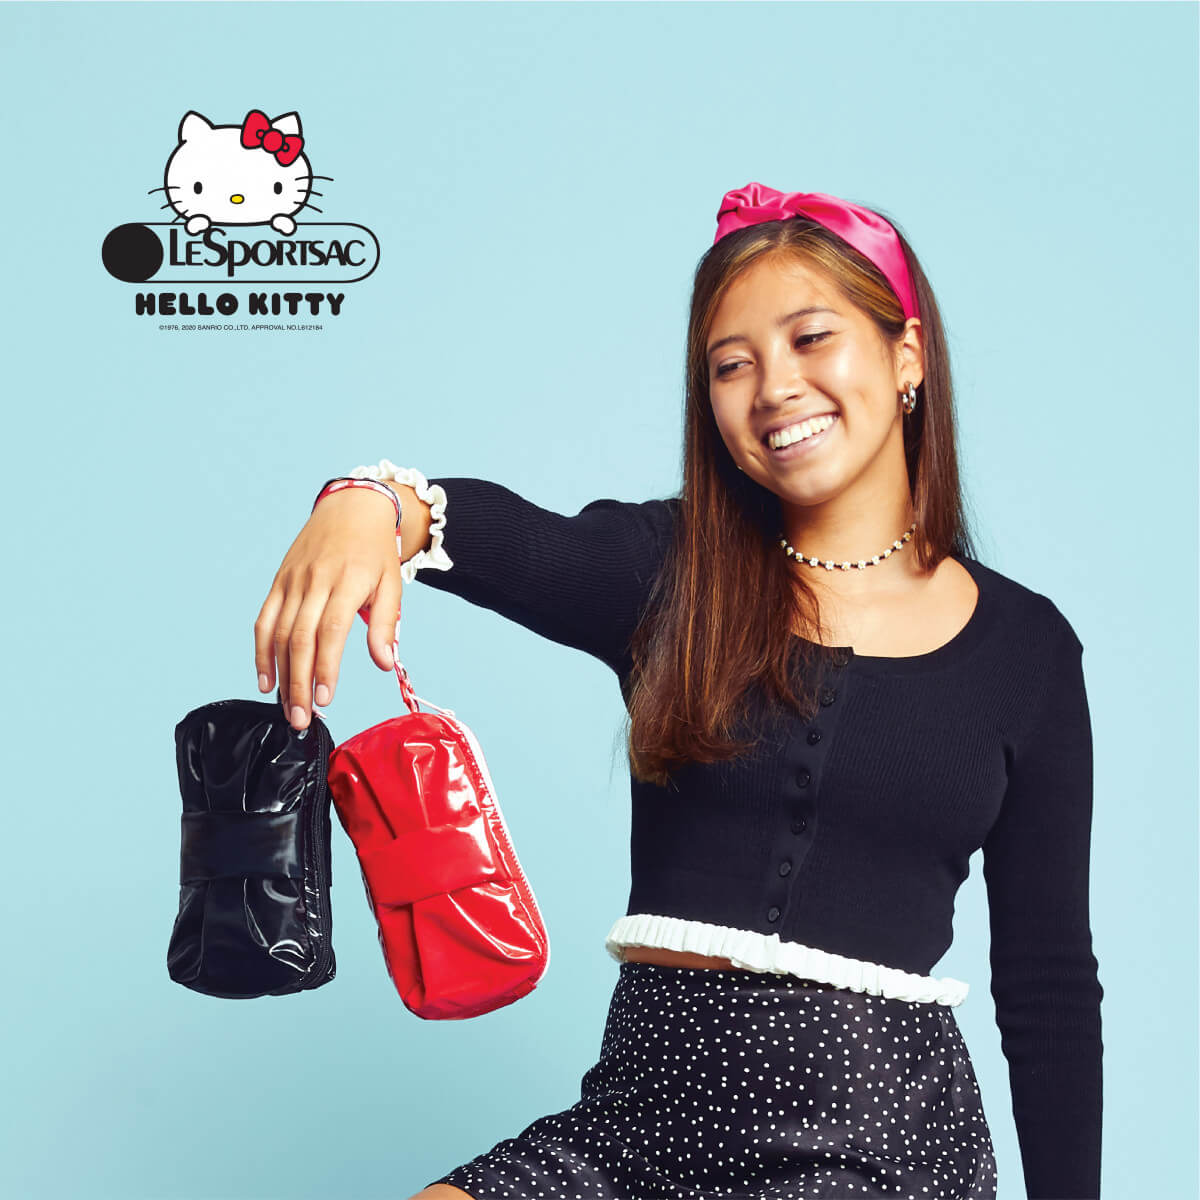 Gifts are Better with Friends: LeSportsac x Hello Kitty Gift Guide